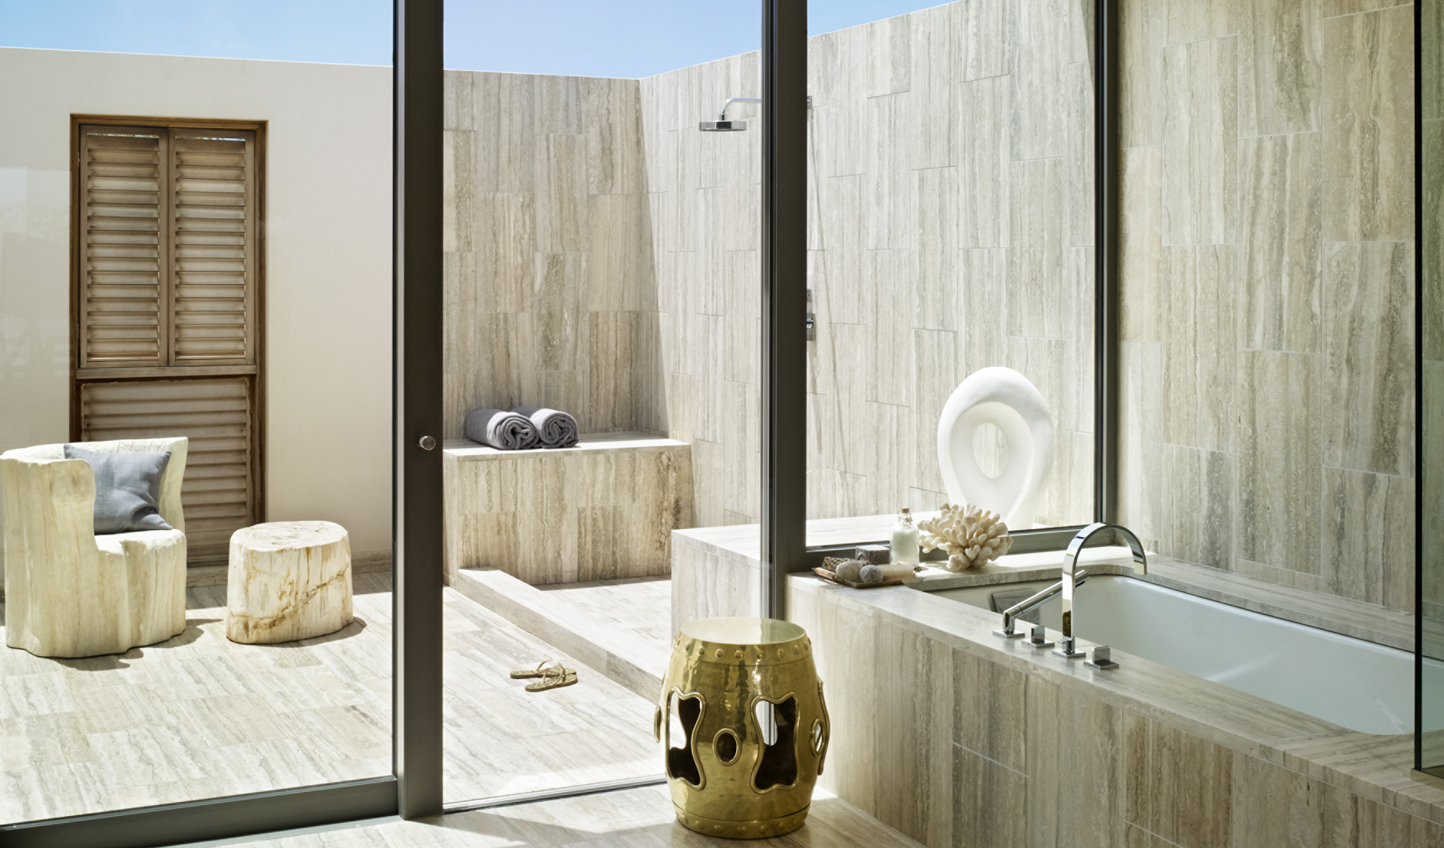 Step into your beautiful indoor-outdoor bathroom